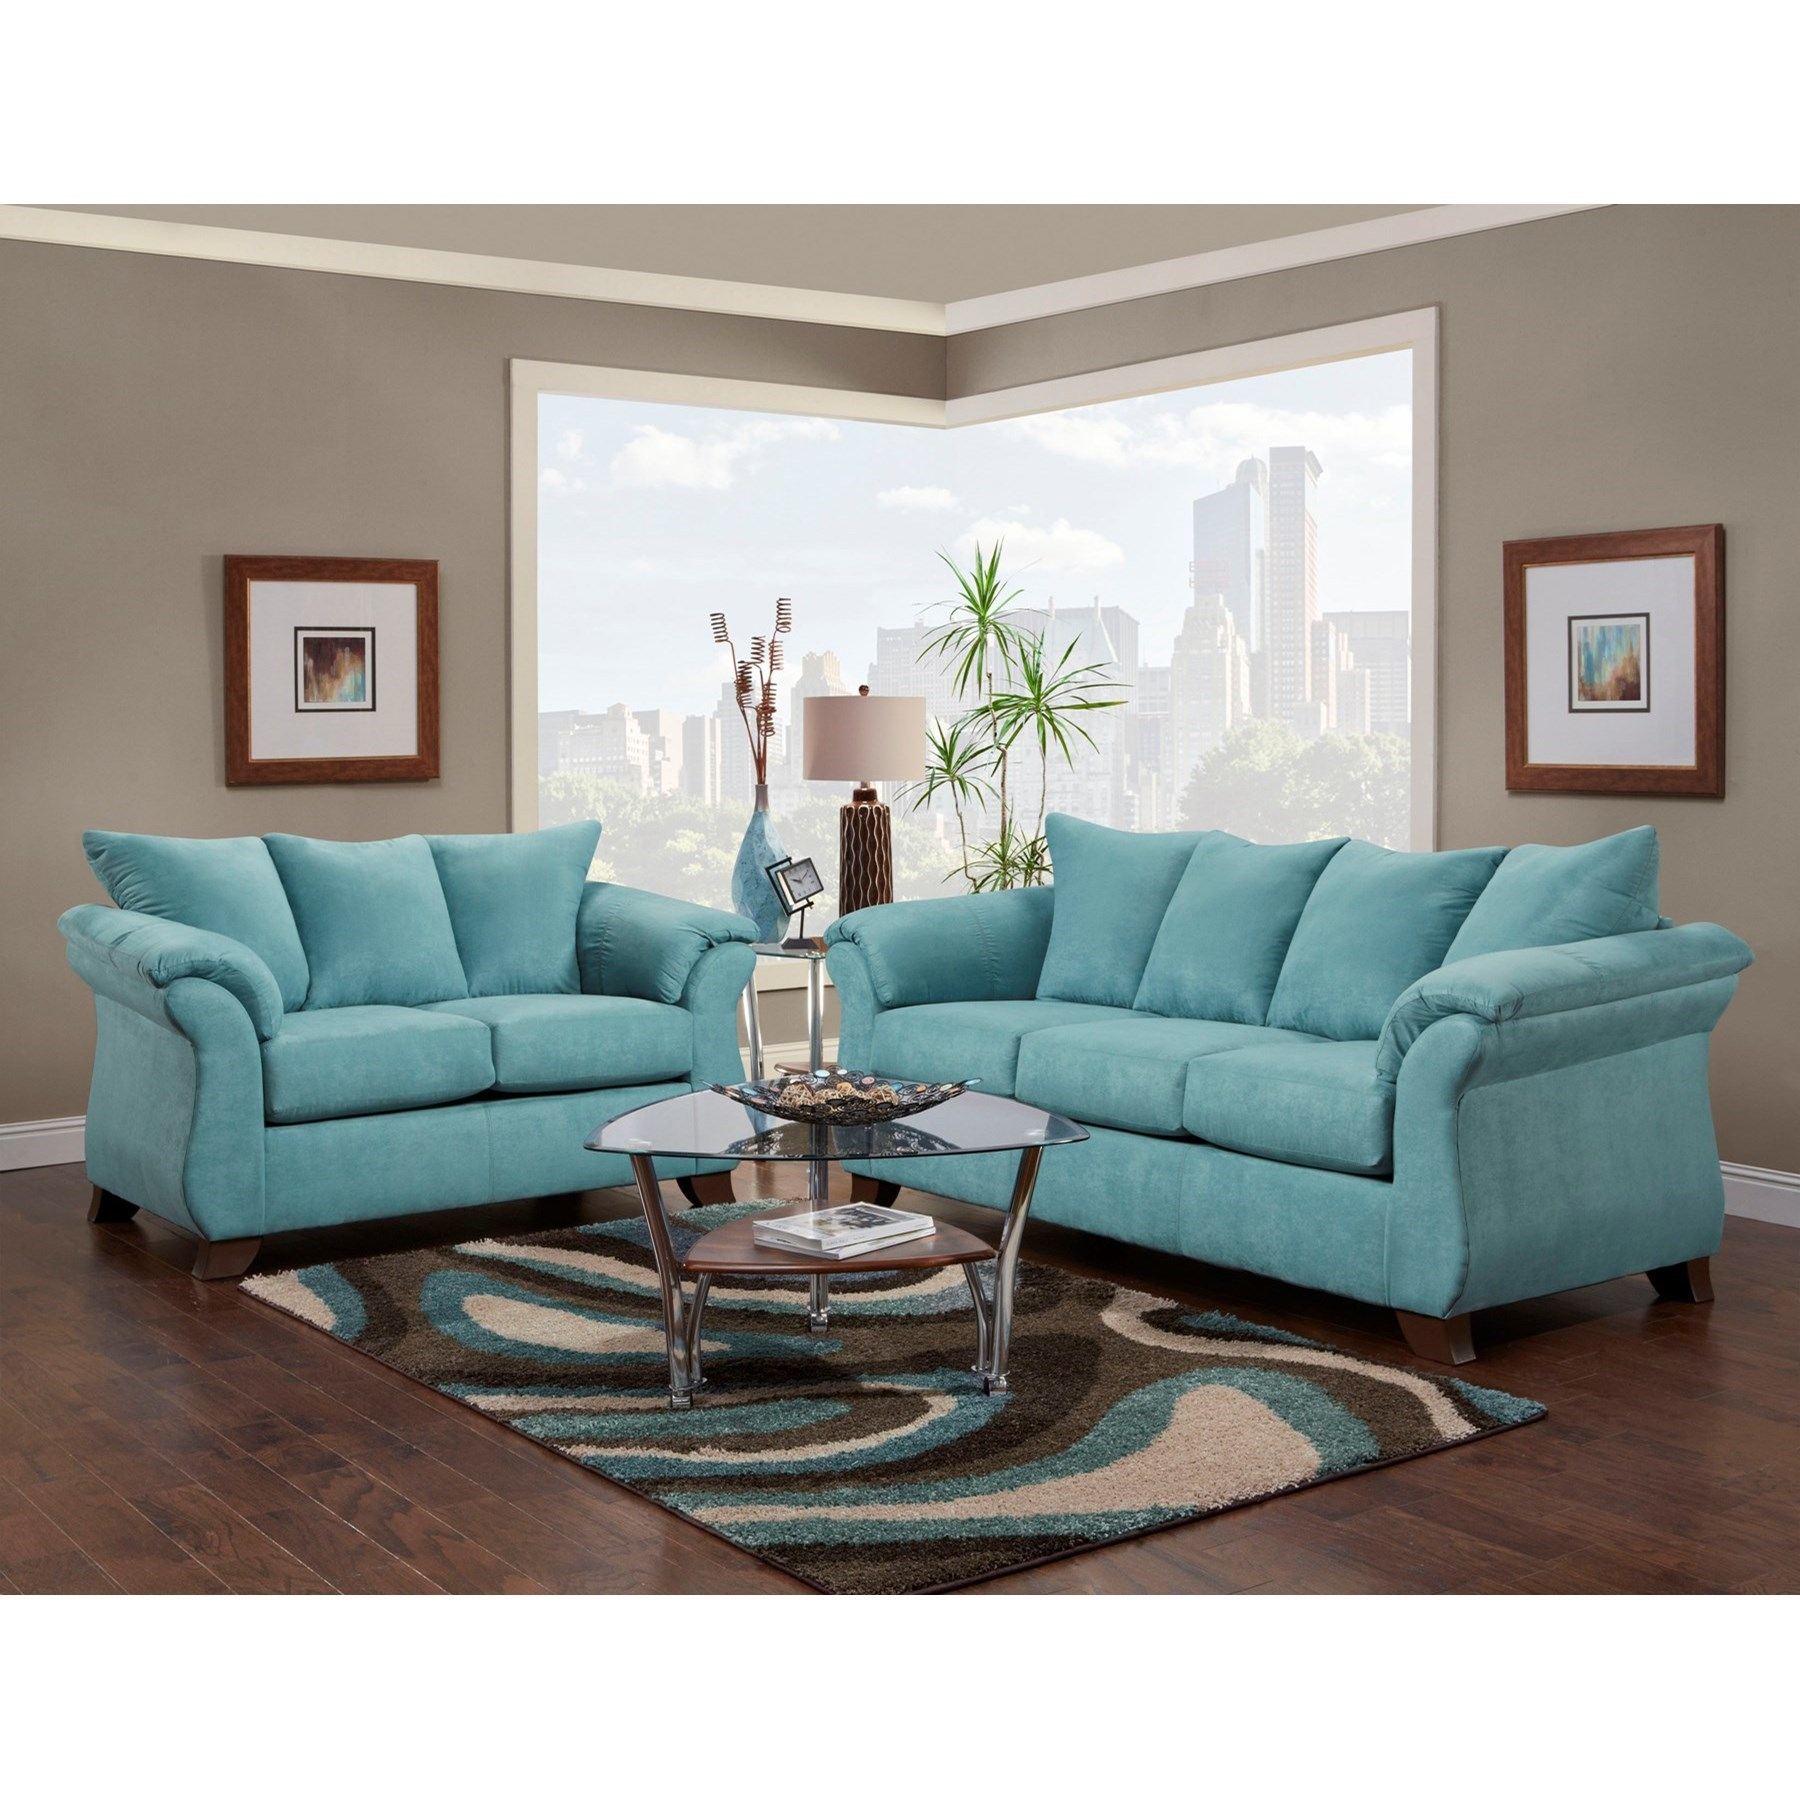 6700 Living Room Group by Affordable Furniture at Wilcox Furniture